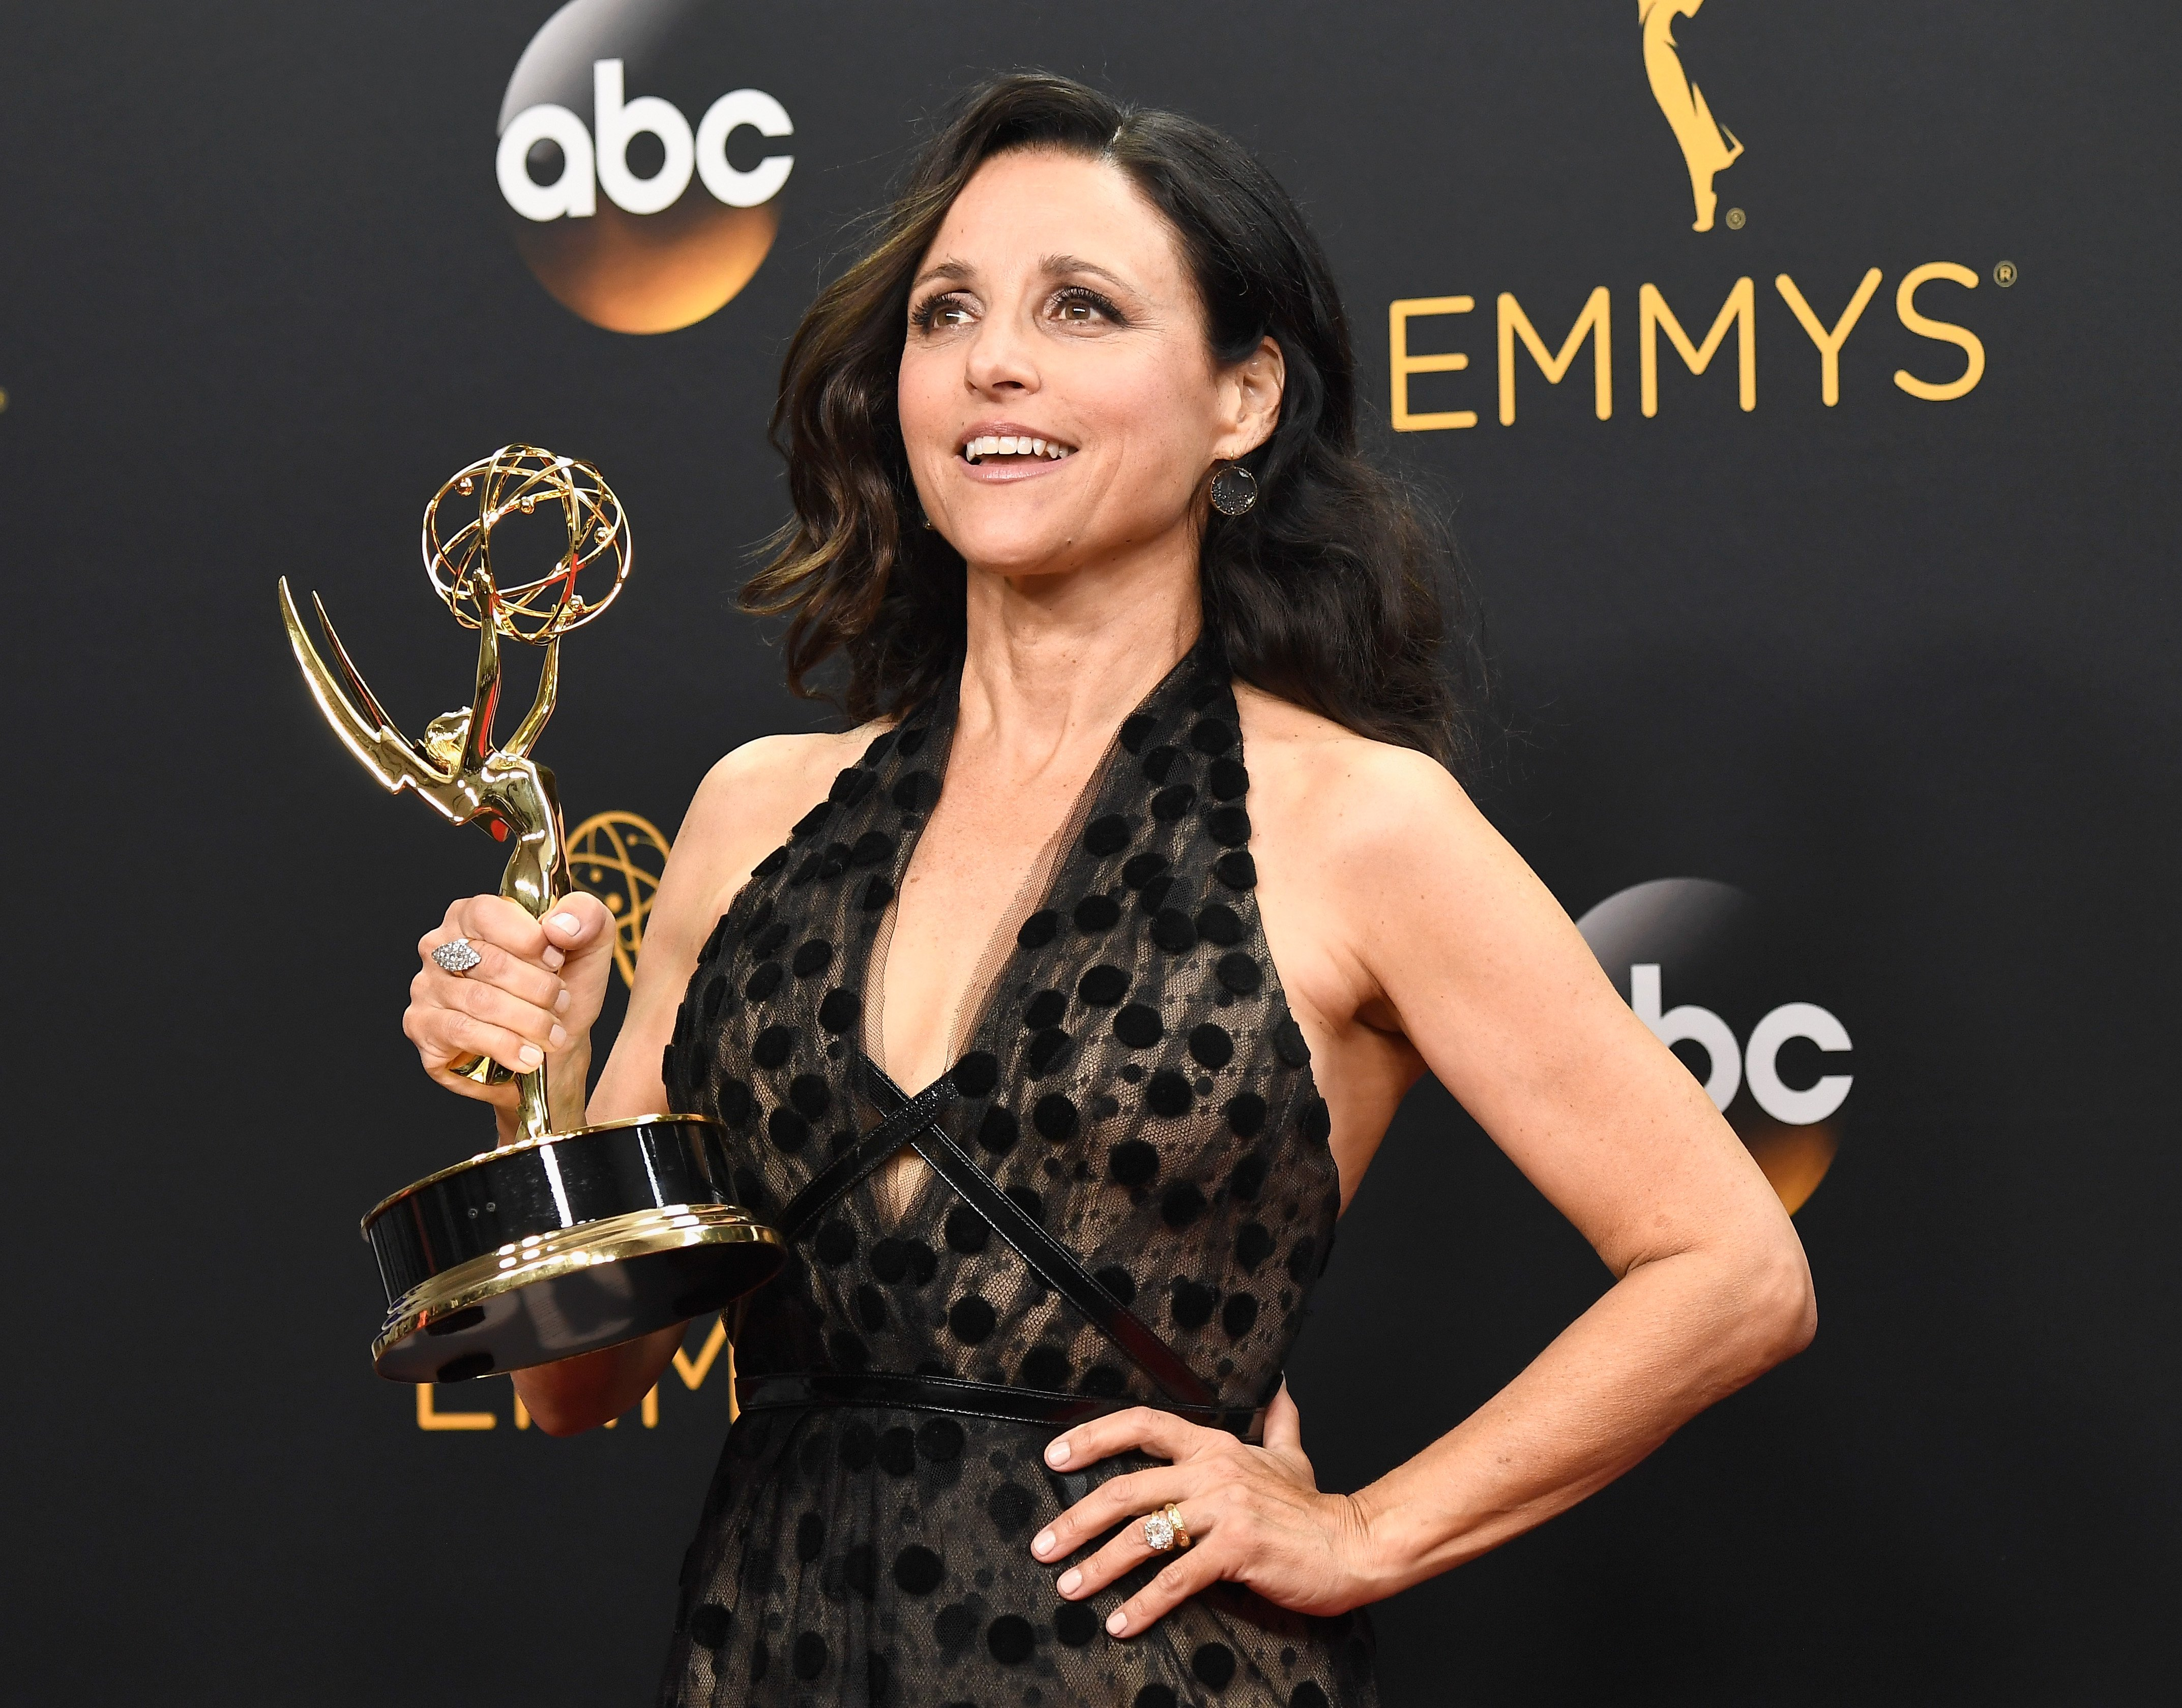 Julia Louis-Dreyfus, winner of Best Actress in a Comedy Series for 'Veep', poses in the press room during the 68th Annual Primetime Emmy Awards at Microsoft Theater on September 18, 2016 in Los Angeles